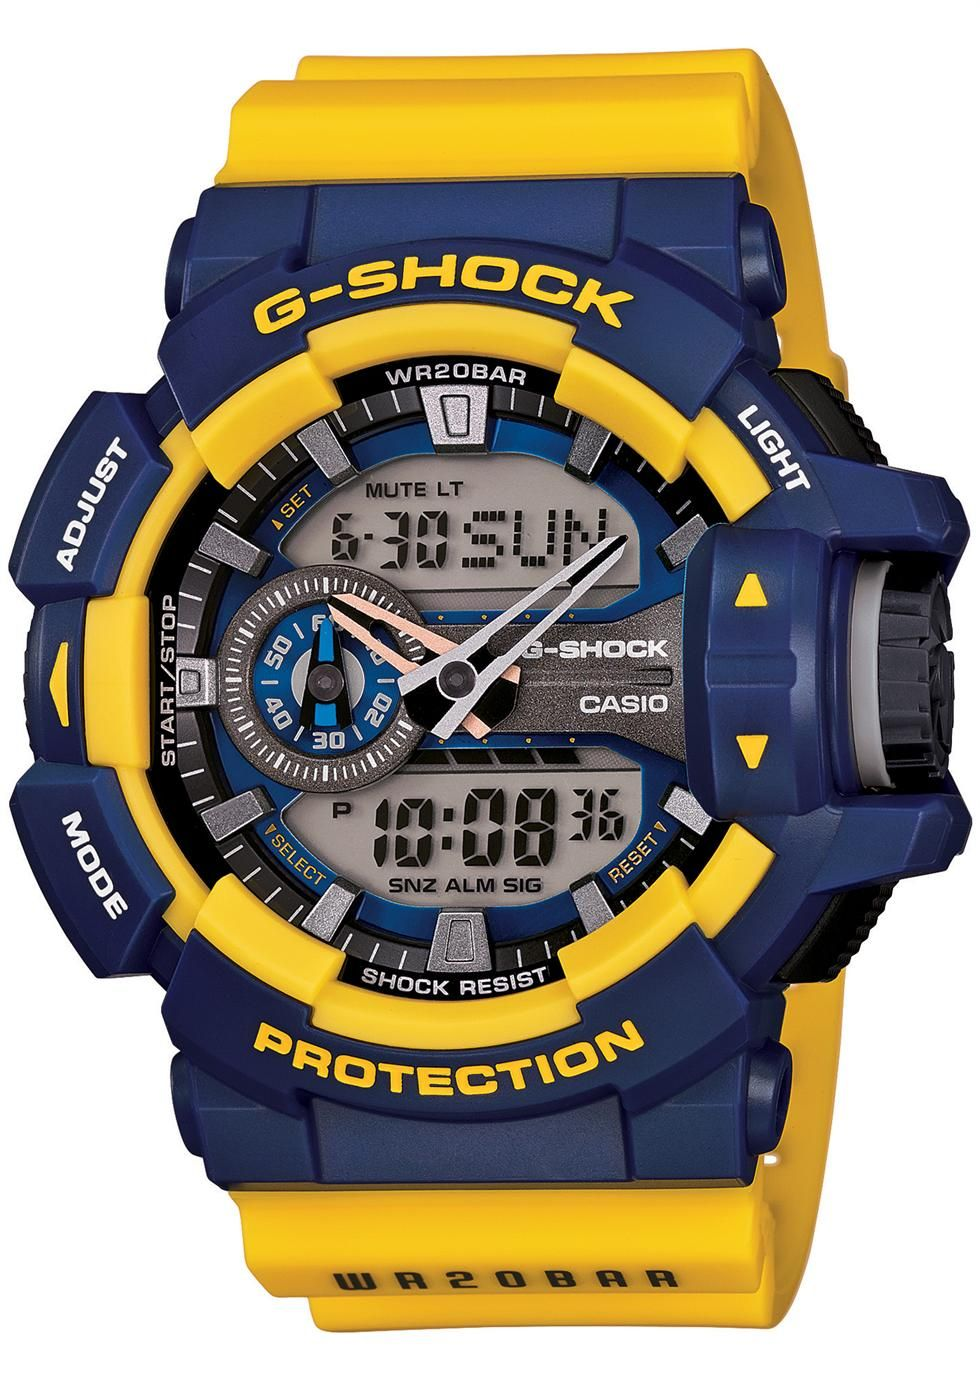 c197d47aa9a G-Shock GA-400 Series Worldtime -Navy Gold